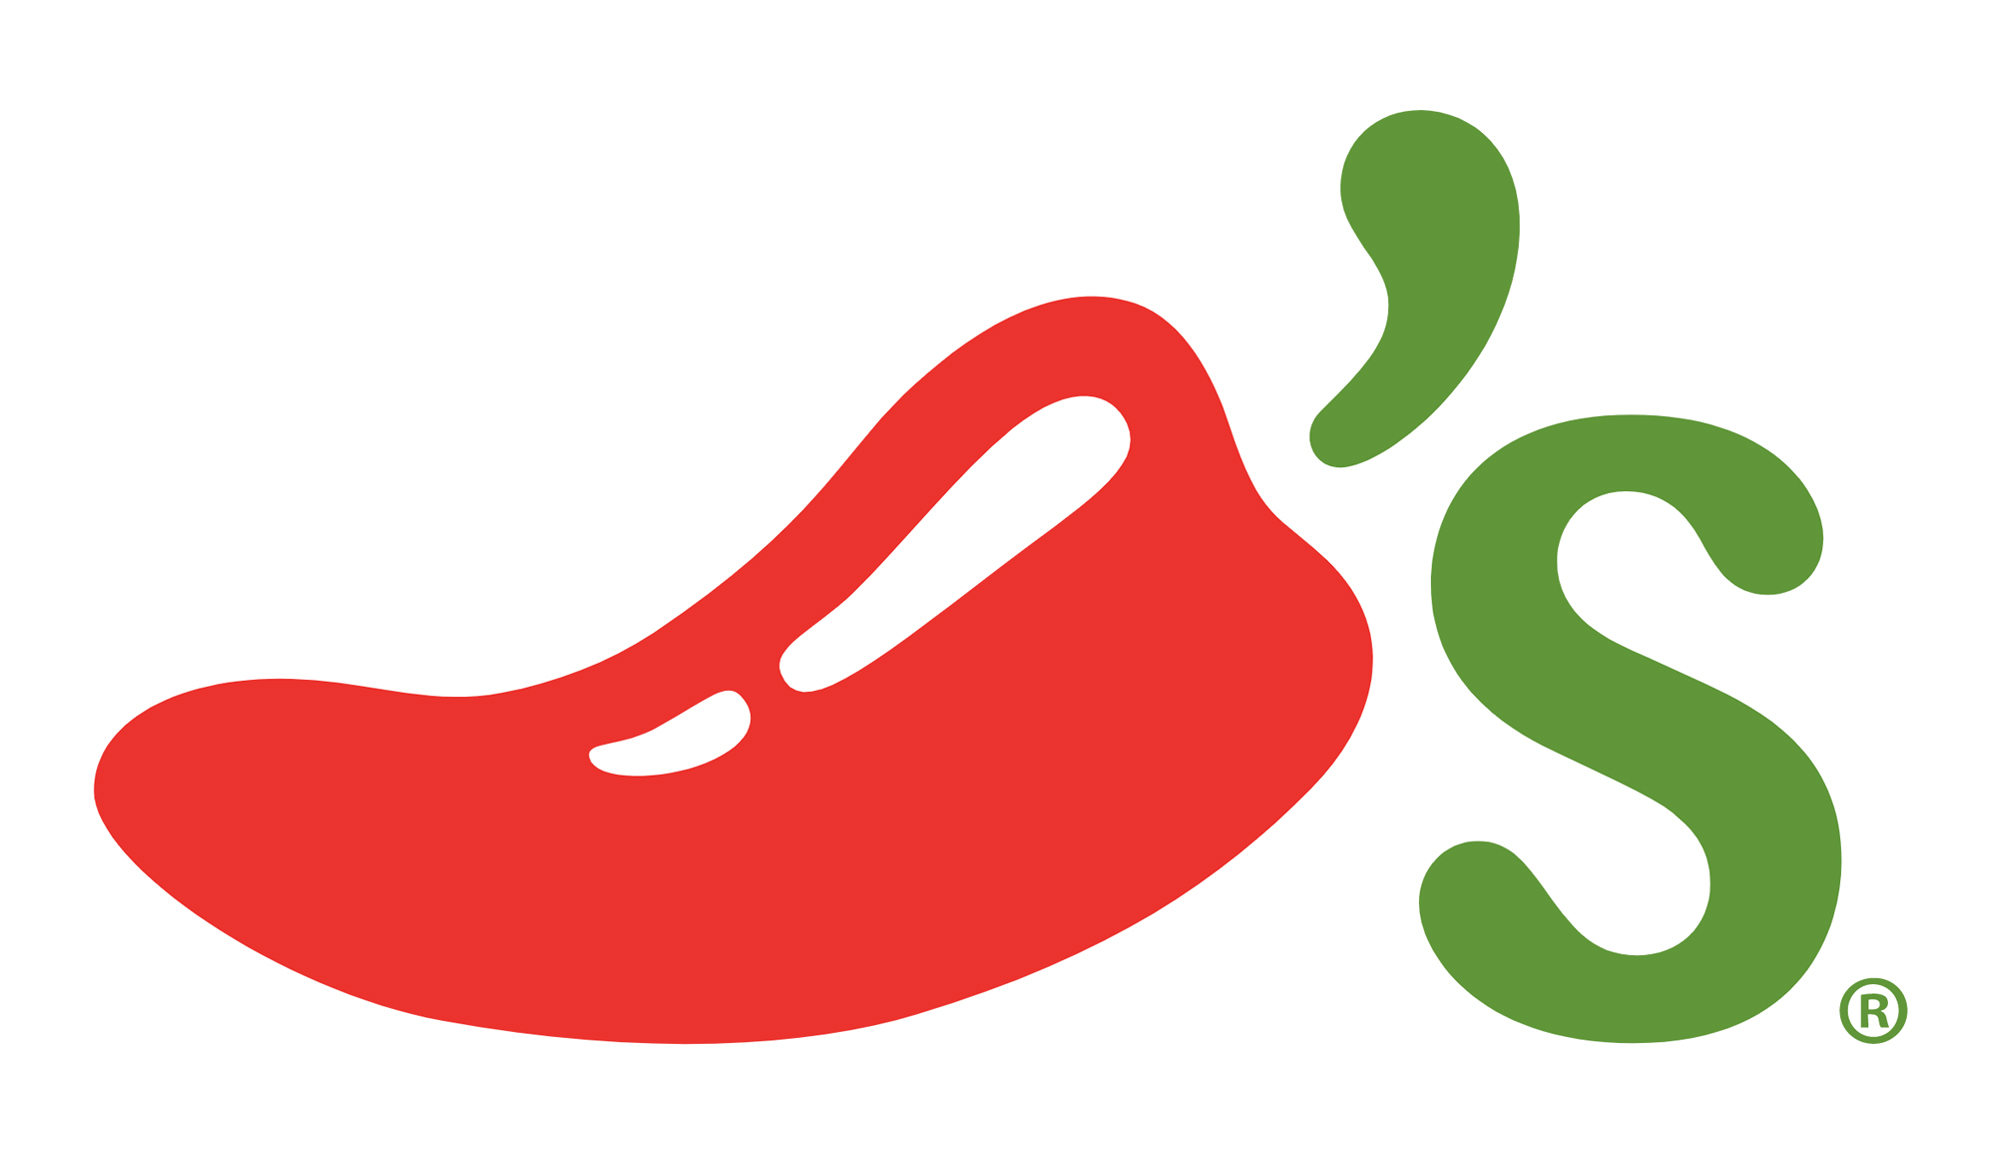 Chili's Grill and Bar logo